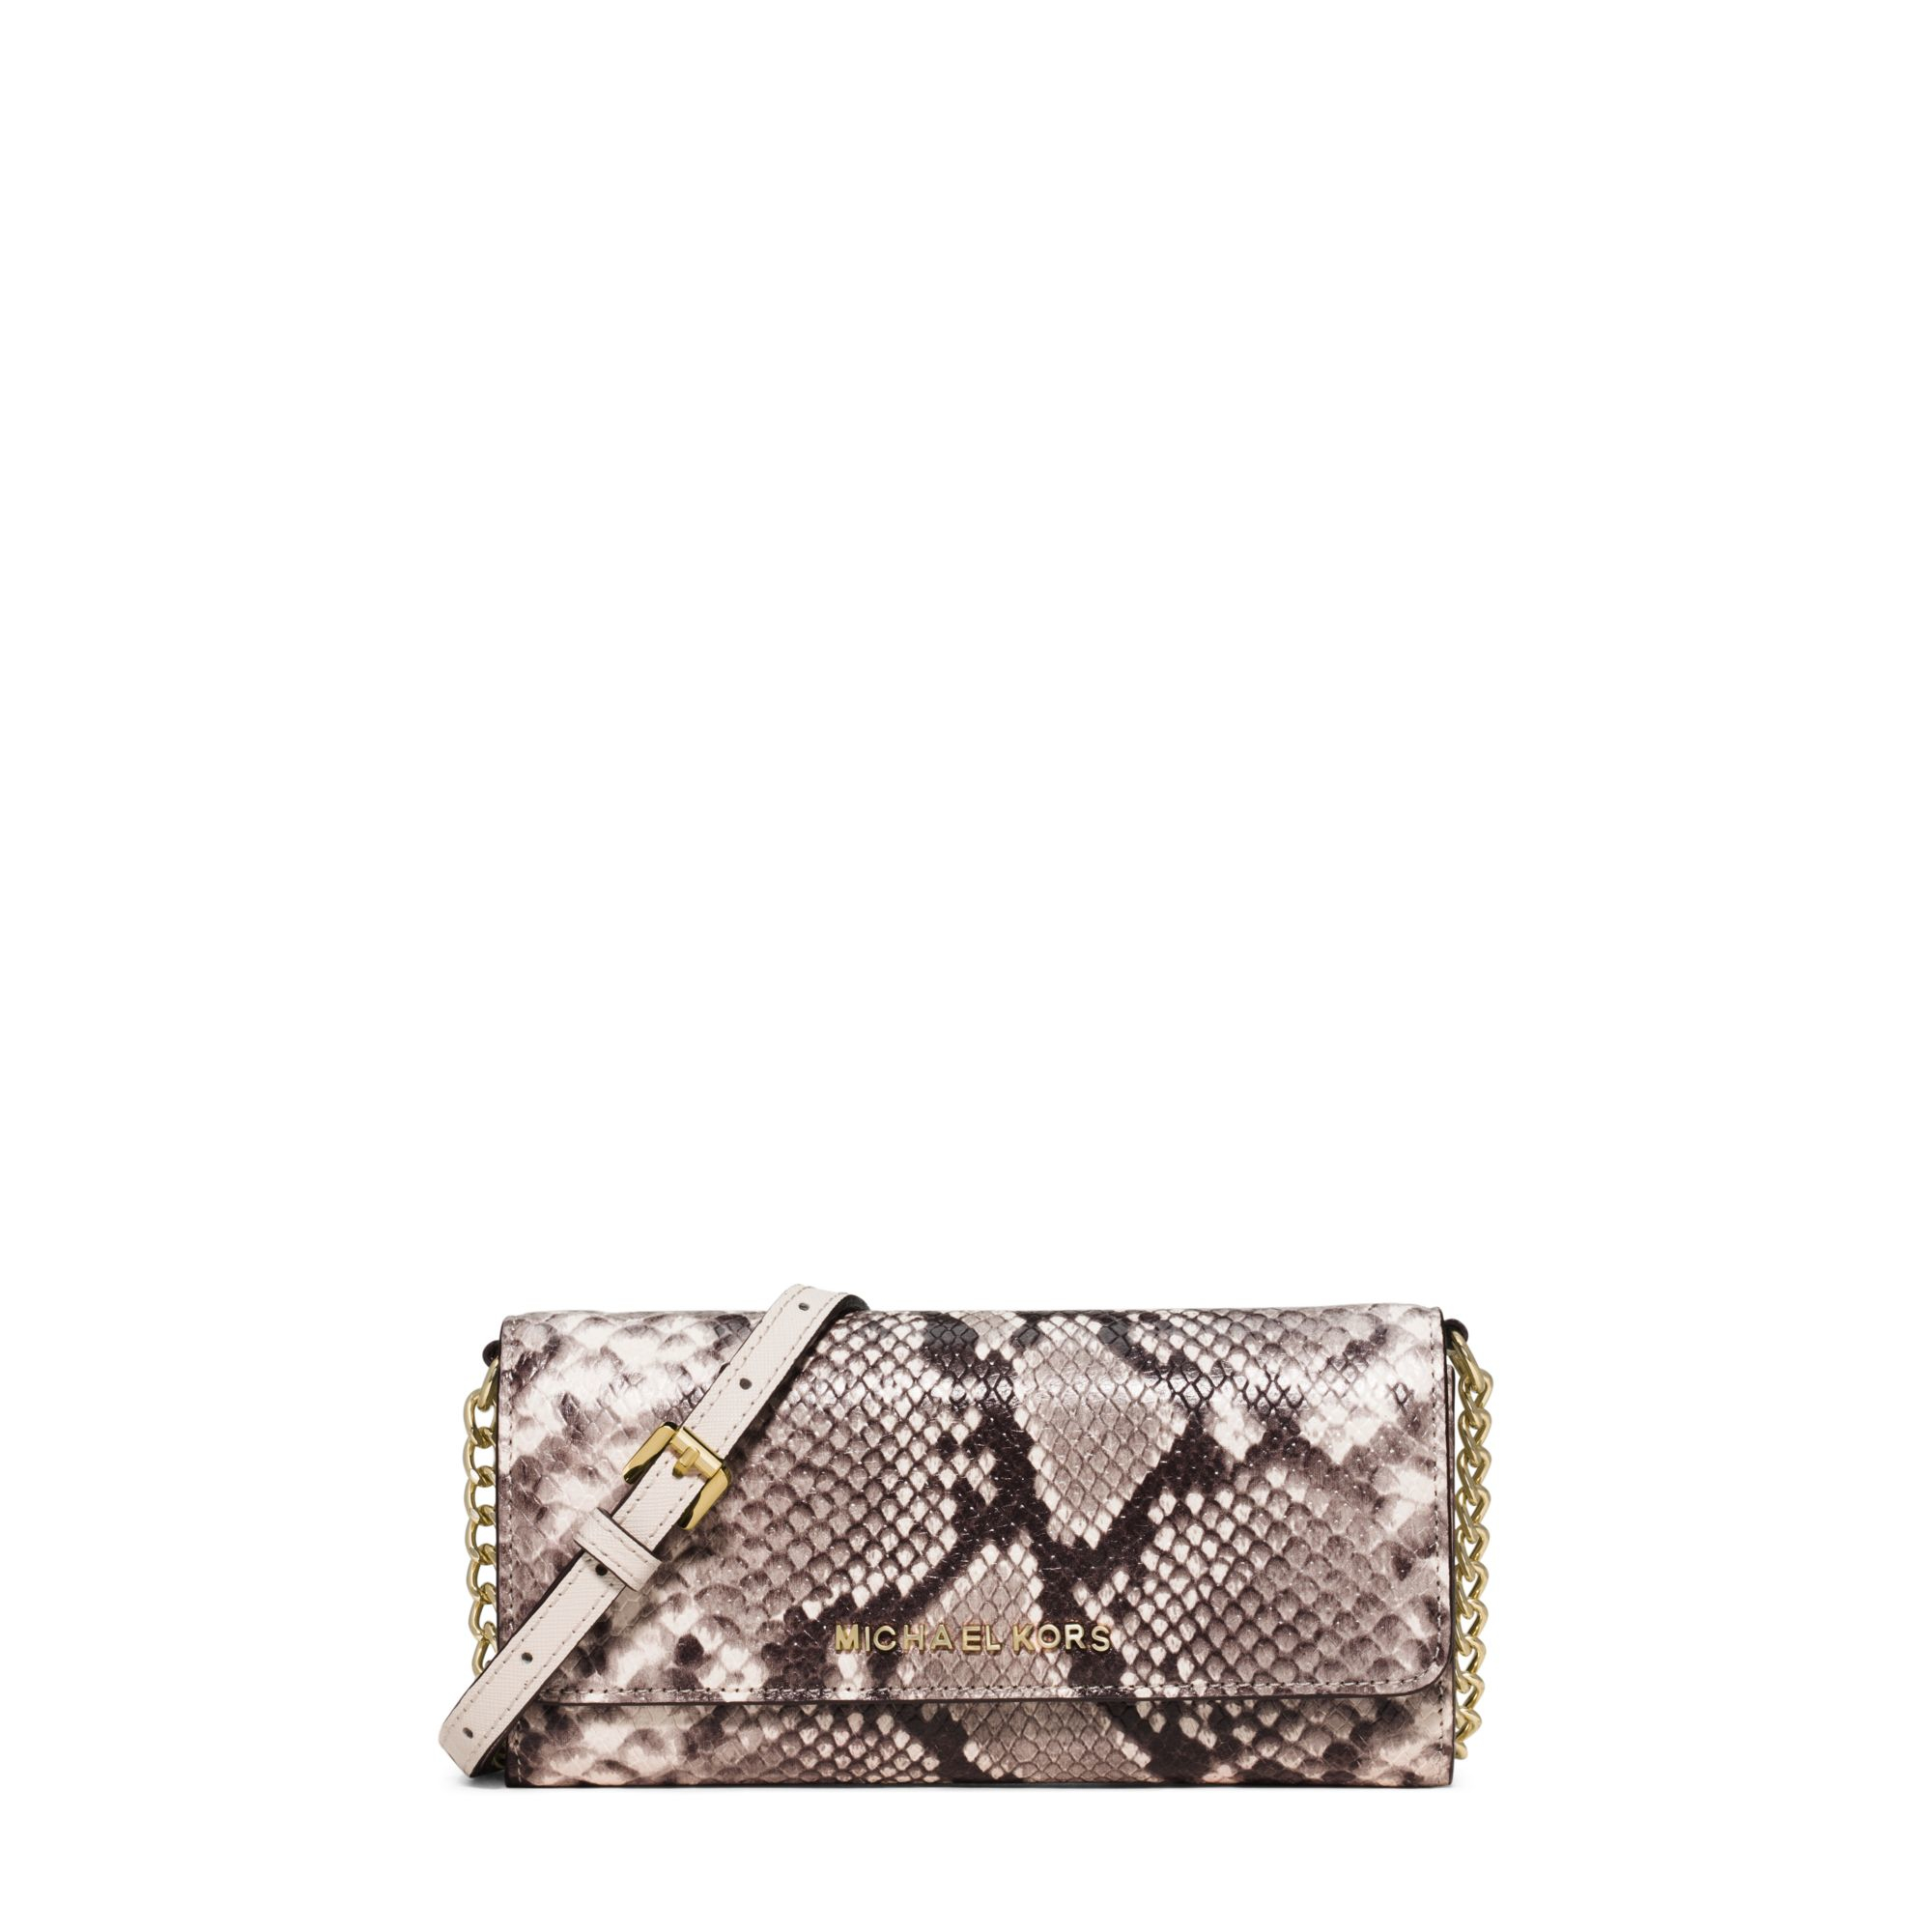 53f0069f0bb6 Michael Kors Jet Set Travel Embossed-leather Continental Wallet in ...